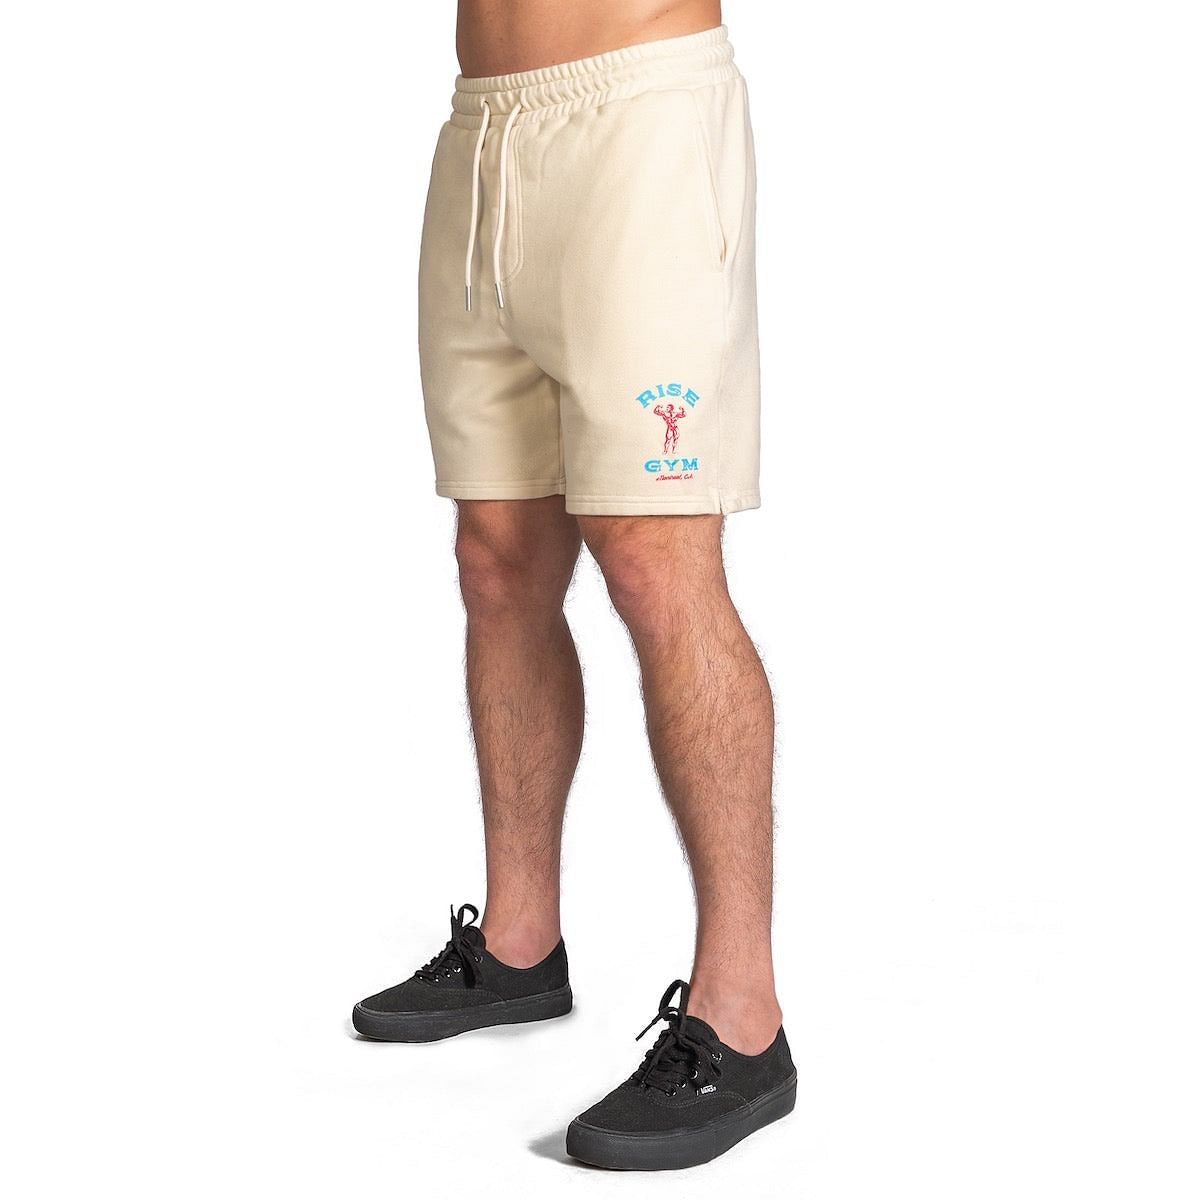 "Era Shorts 7"" - Beige"